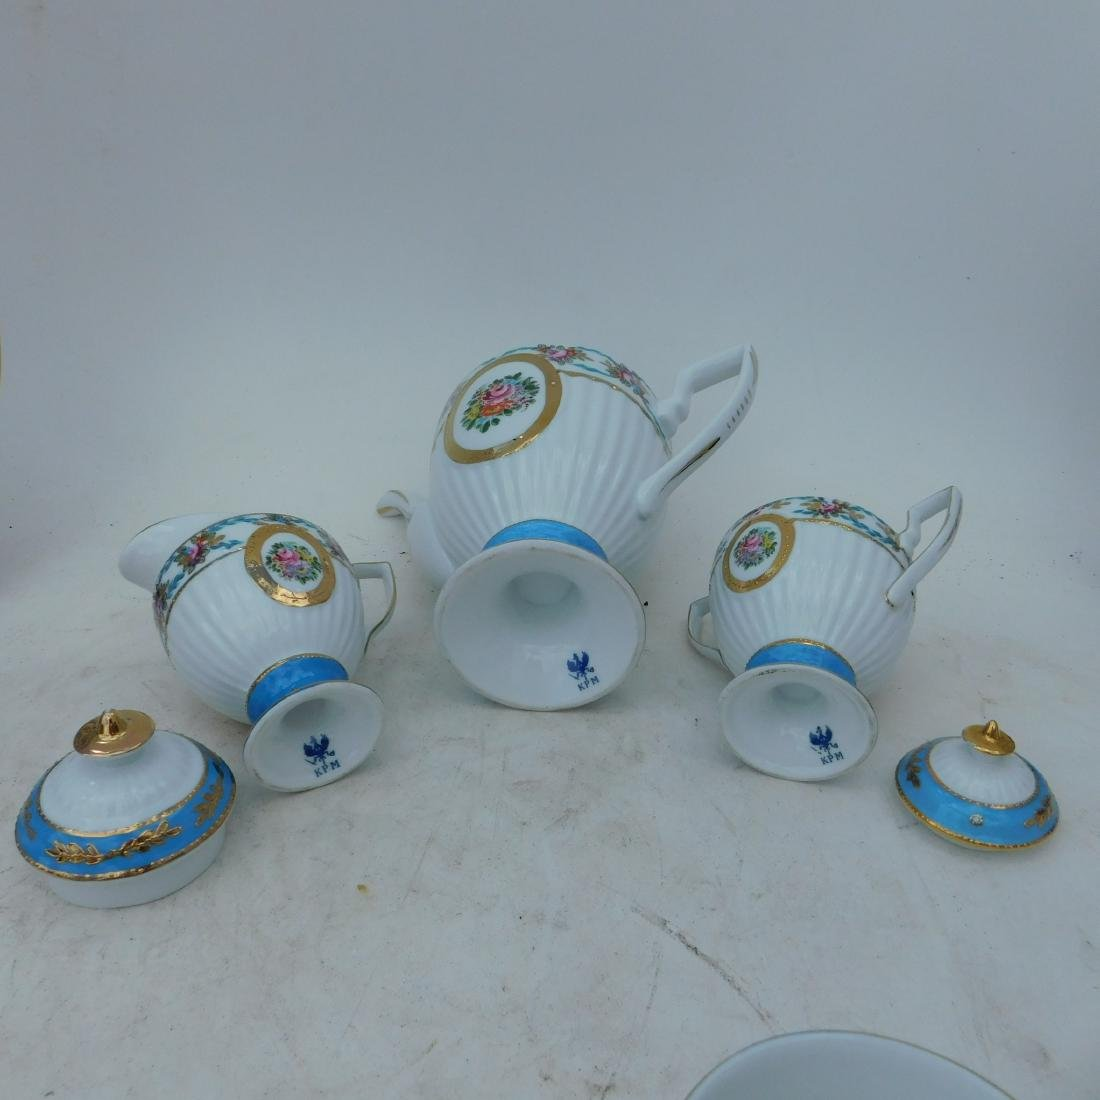 KPM Partial Coffee and Dessert Service In Turquois - 6